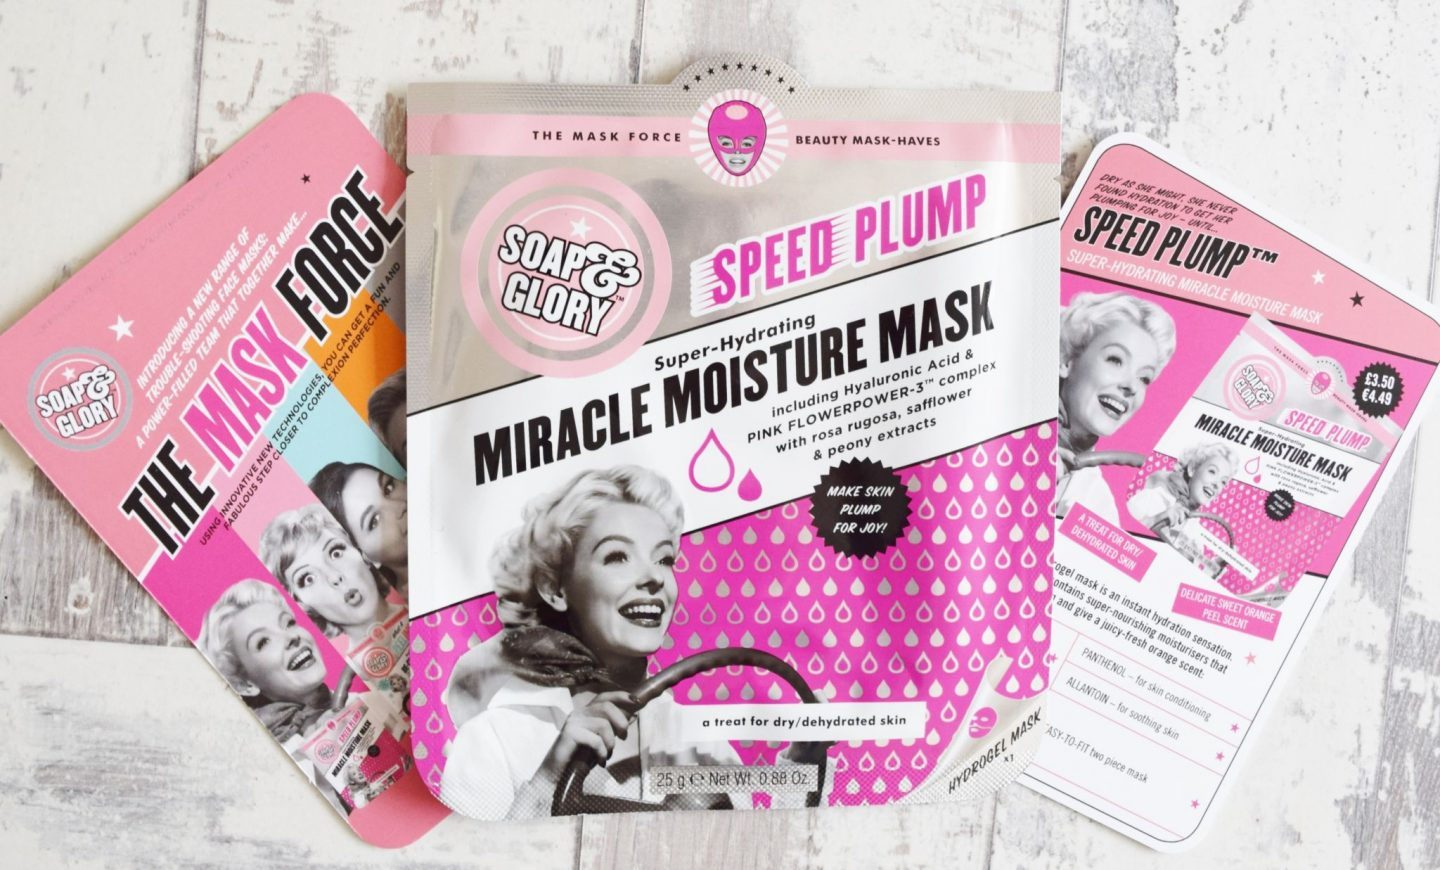 Soap & Glory Speed Plump Super-Hydrating Miracle Moisture Mask